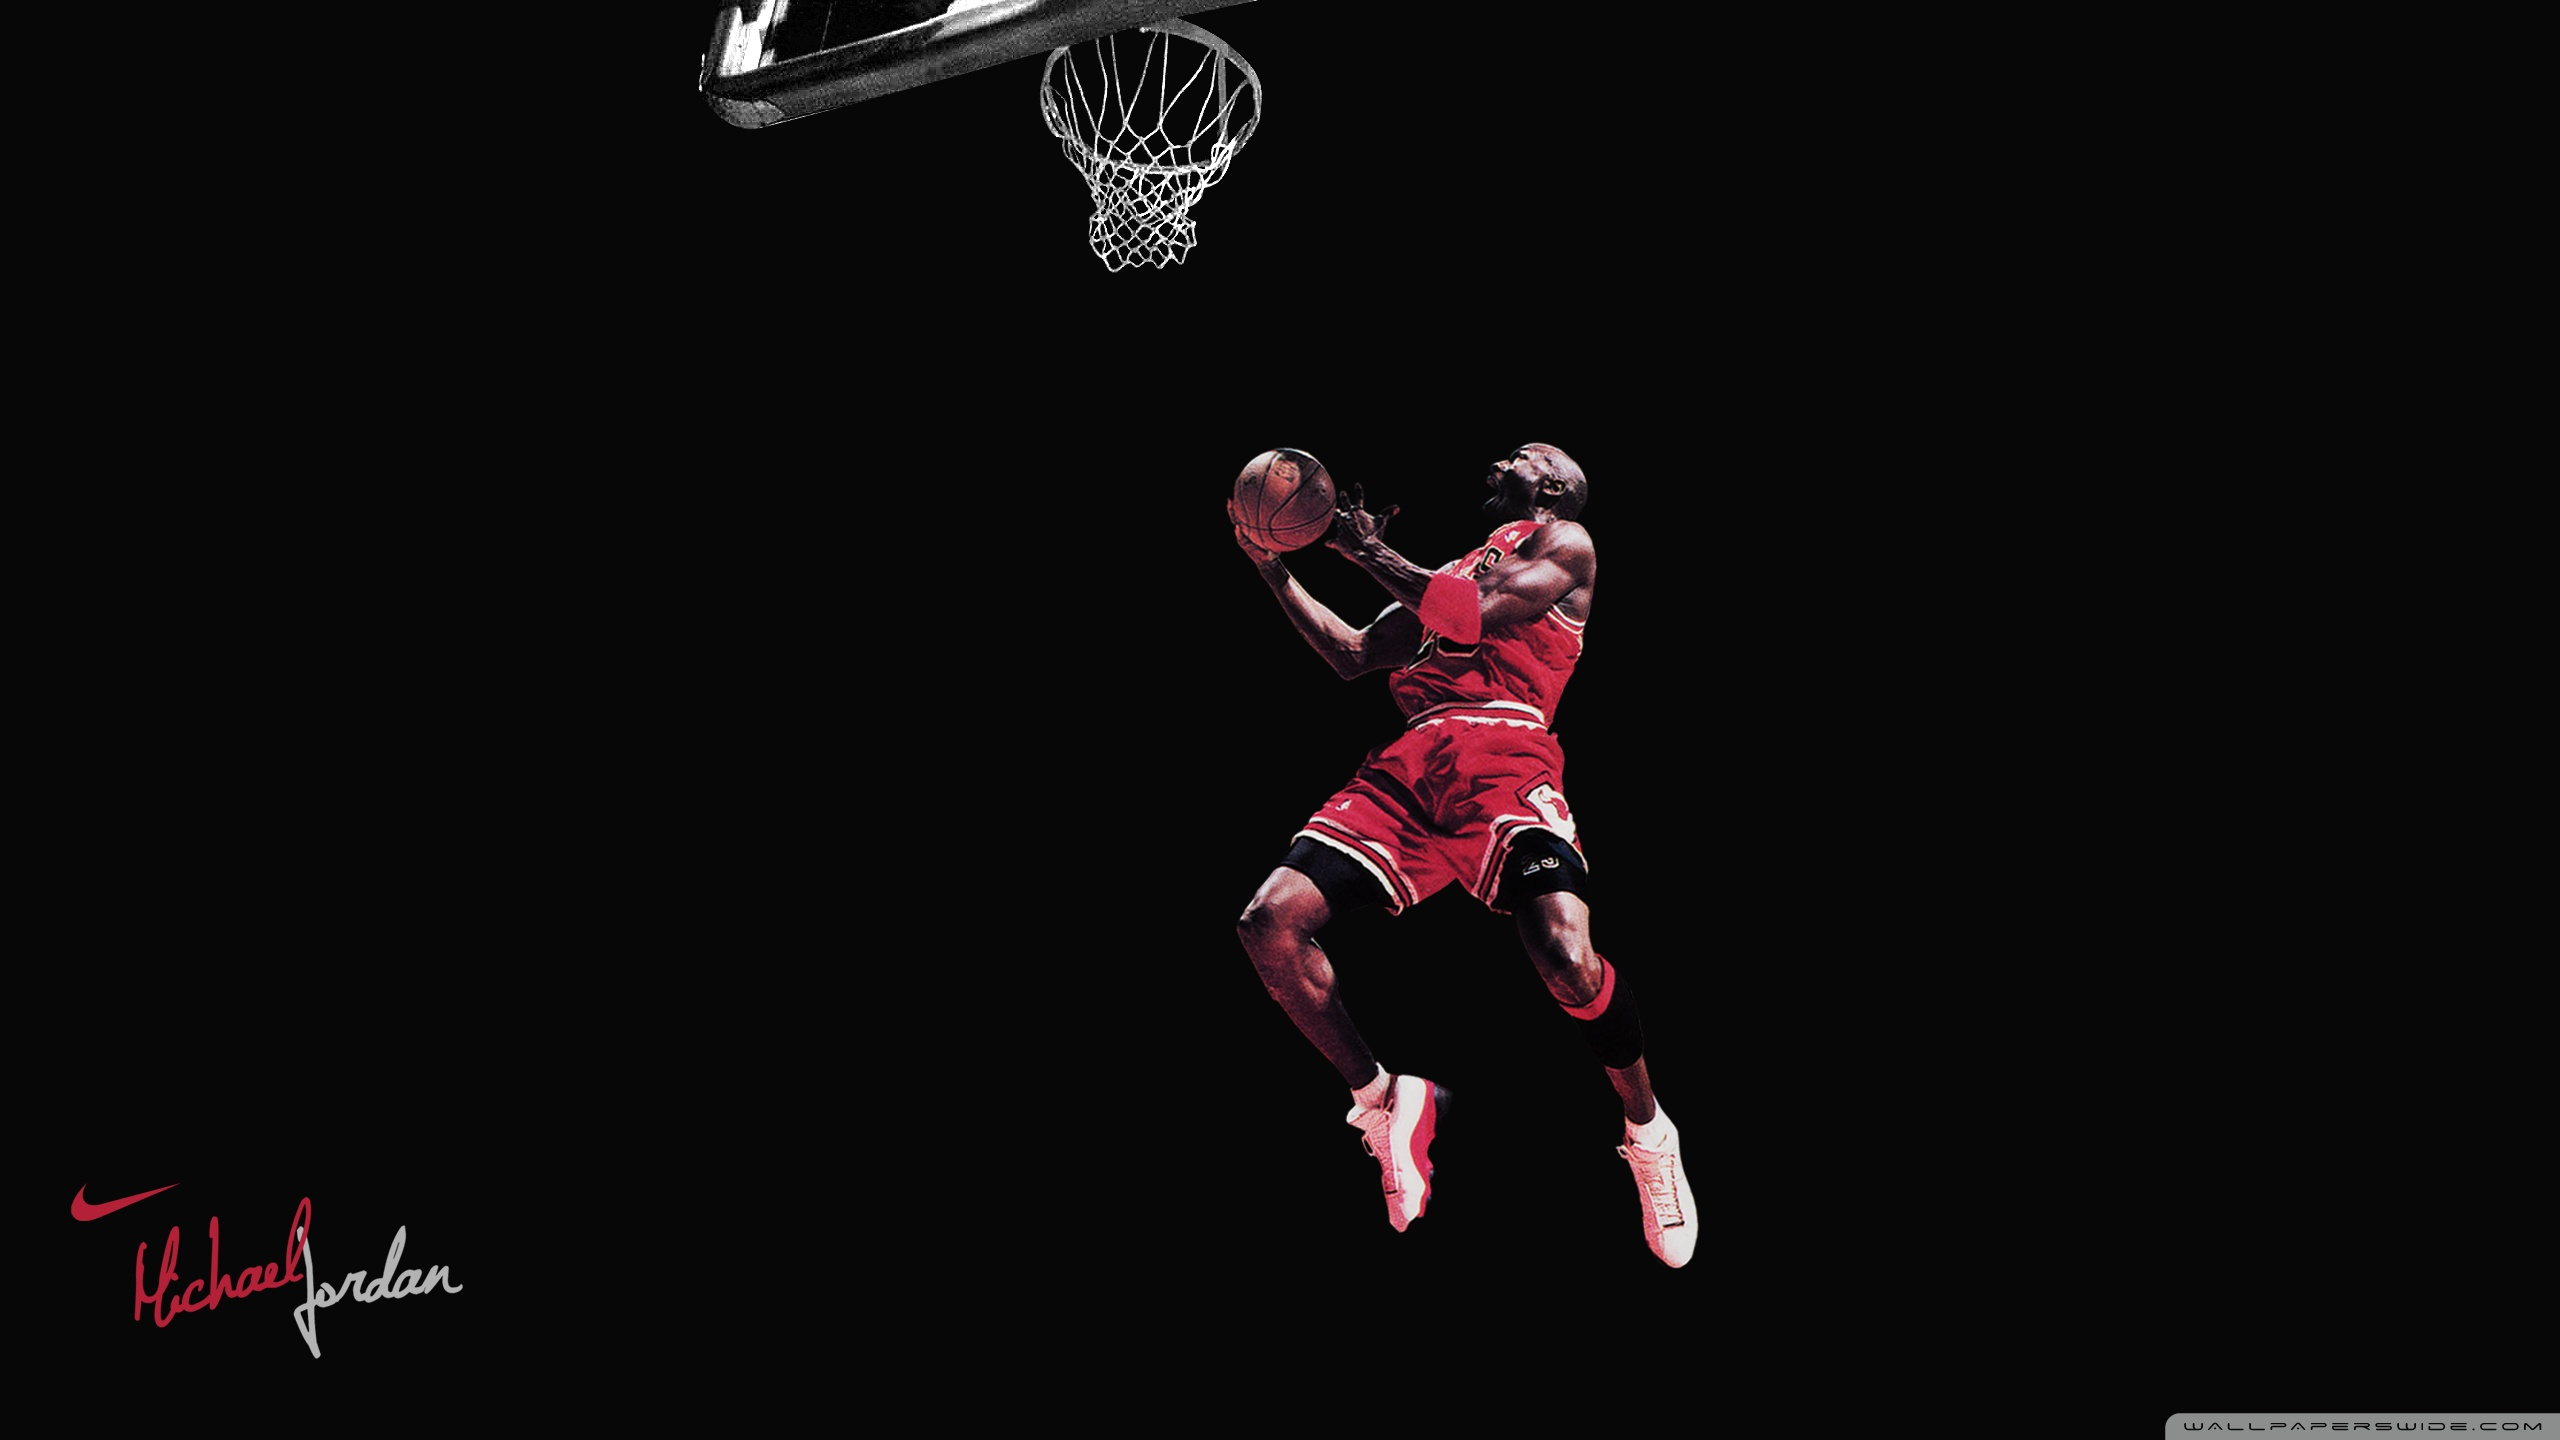 Jordan Mobile Wallpaper